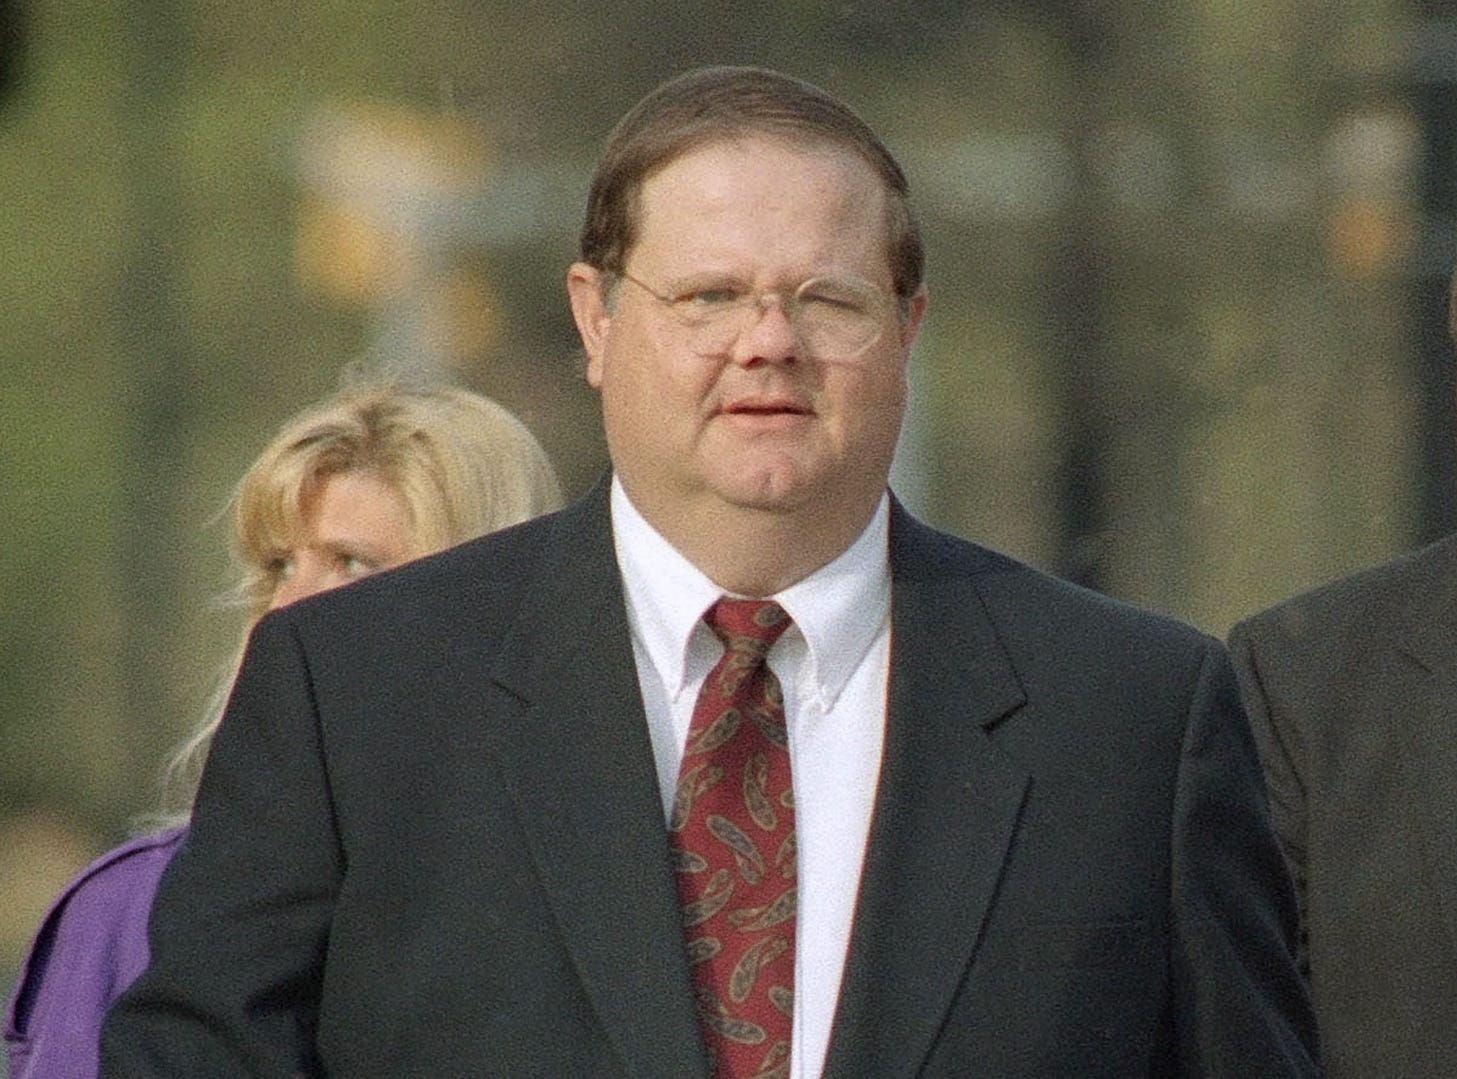 FILE -  This March 31, 1995 file photo shows former Knox County medical examiner Dr. Randall Pedigo walking to a court appearance in Knoxville, Tenn. Pedigo pleaded guilty to drugging and molesting young males. Tennessee has a storied history with some of its top death investigators. (Knoxville News Sentinel, J. Miles Cary, File)